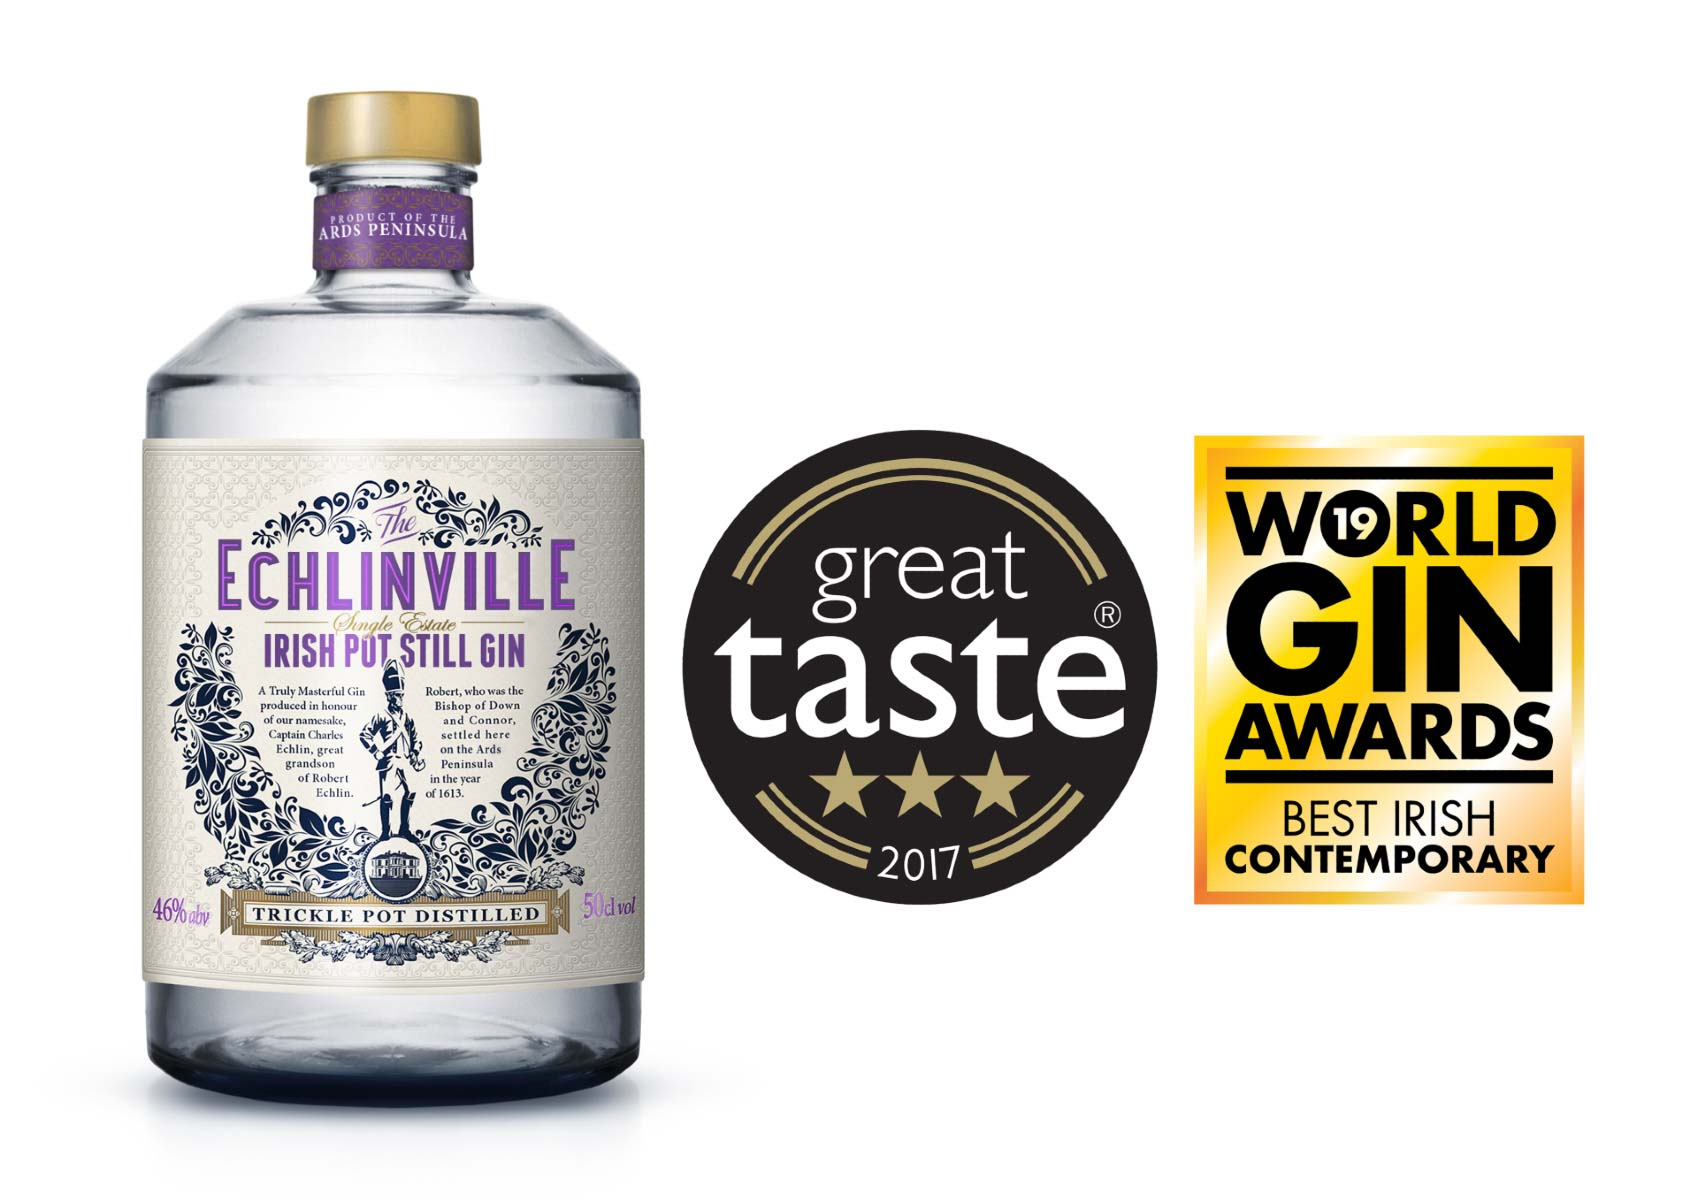 Echlinville Gin named Ireland's Best Contemporary Style Gin